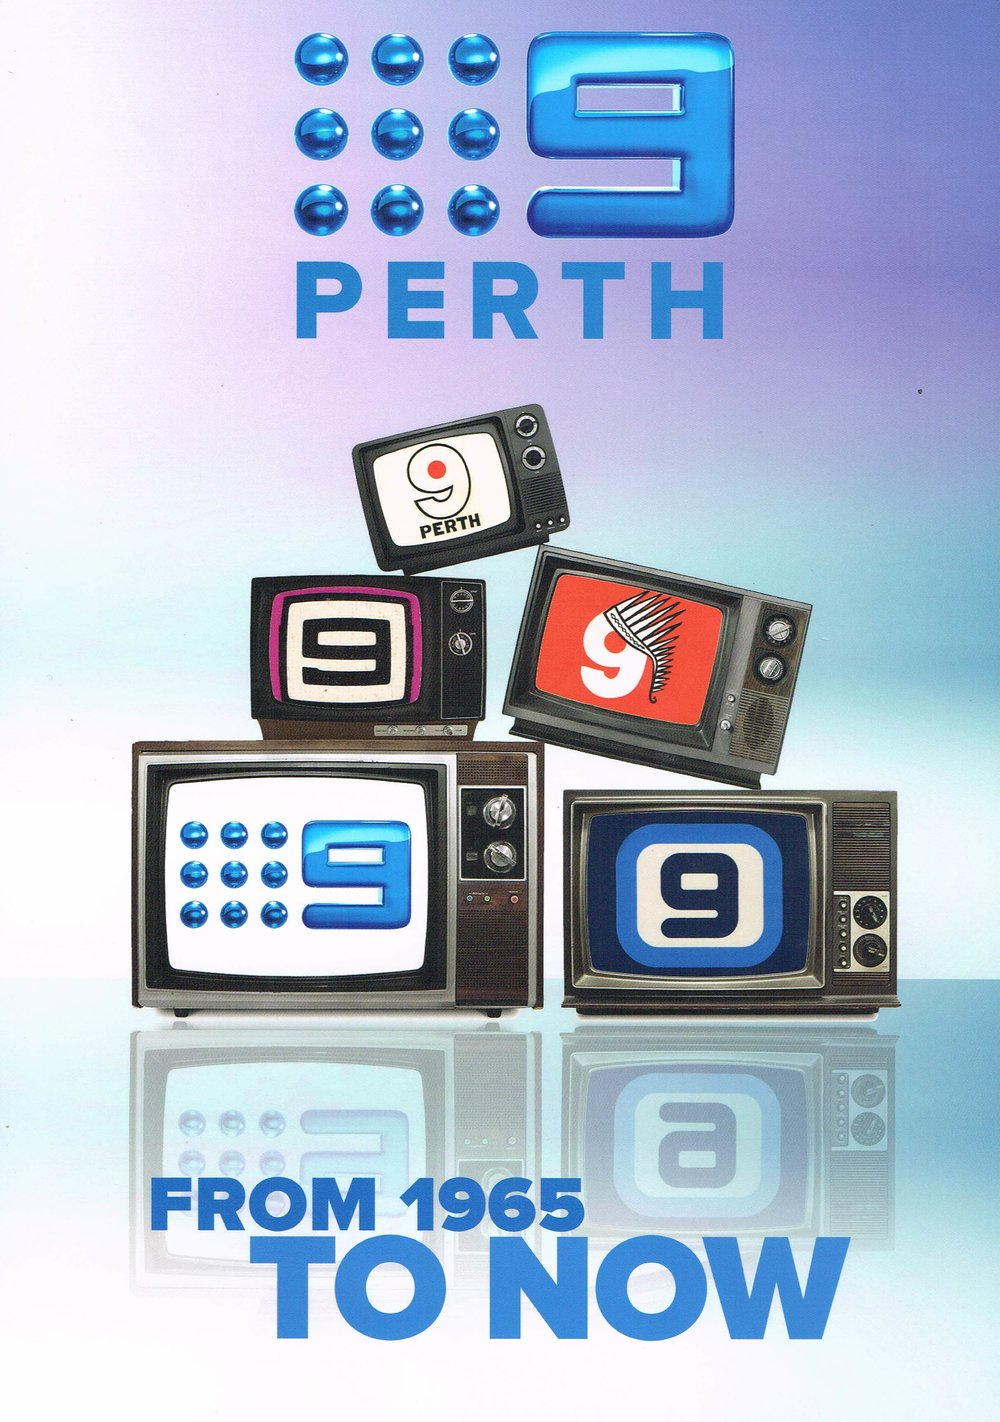 9 Perth : From 1965 to now 9 Perth